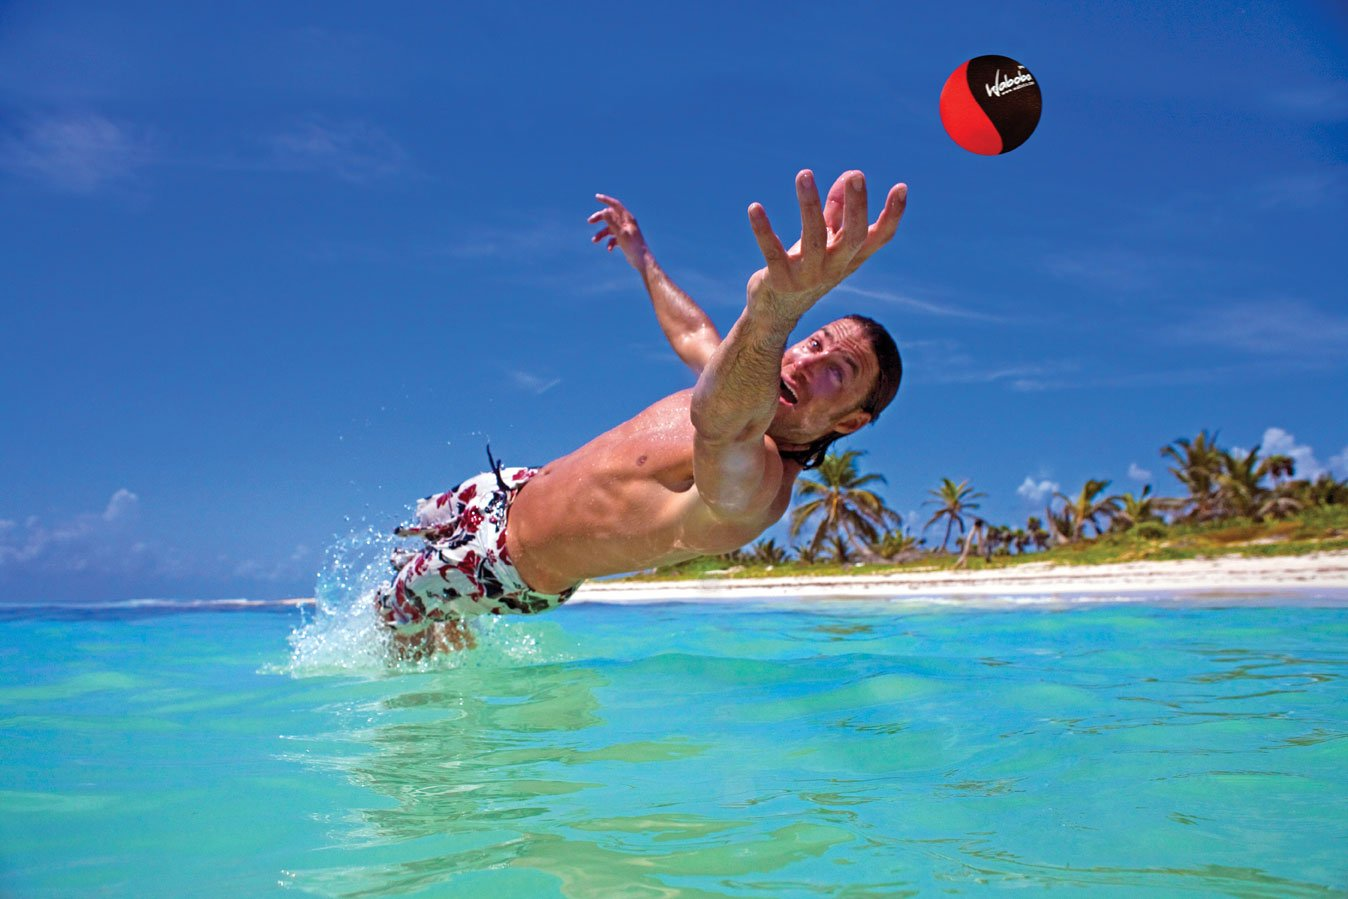 Waboba Extreme Water Bouncing Balls Expertly Chosen Gifts